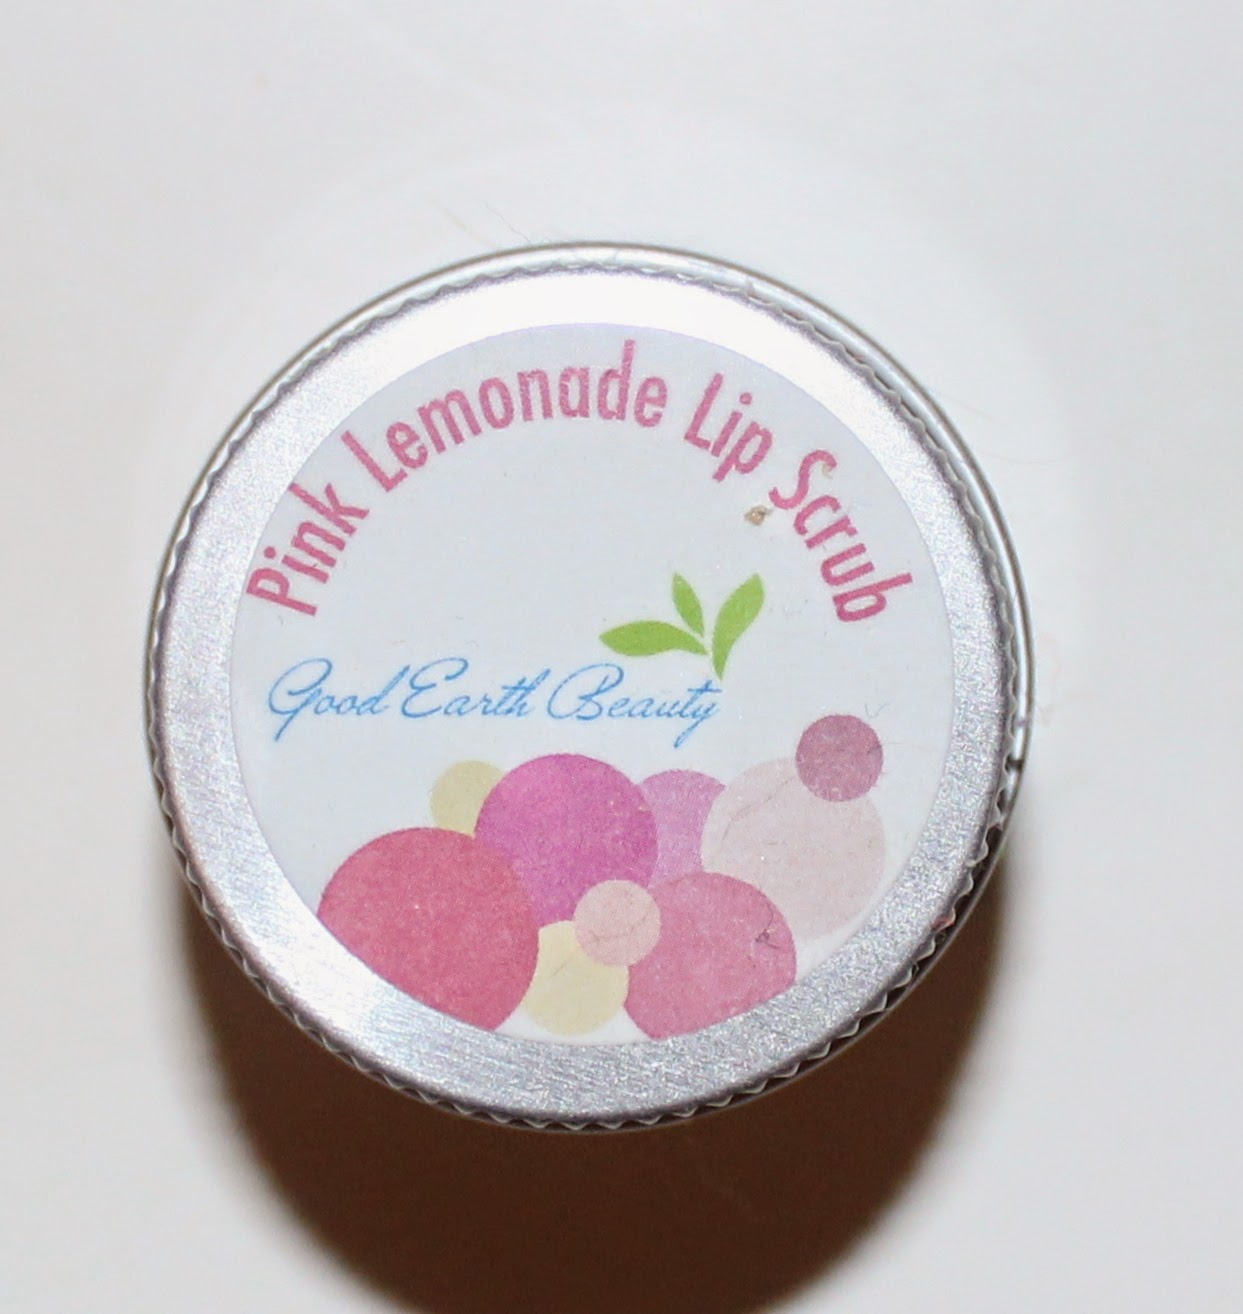 Green Earth Beauty Pink Lemonade Lip Scrub